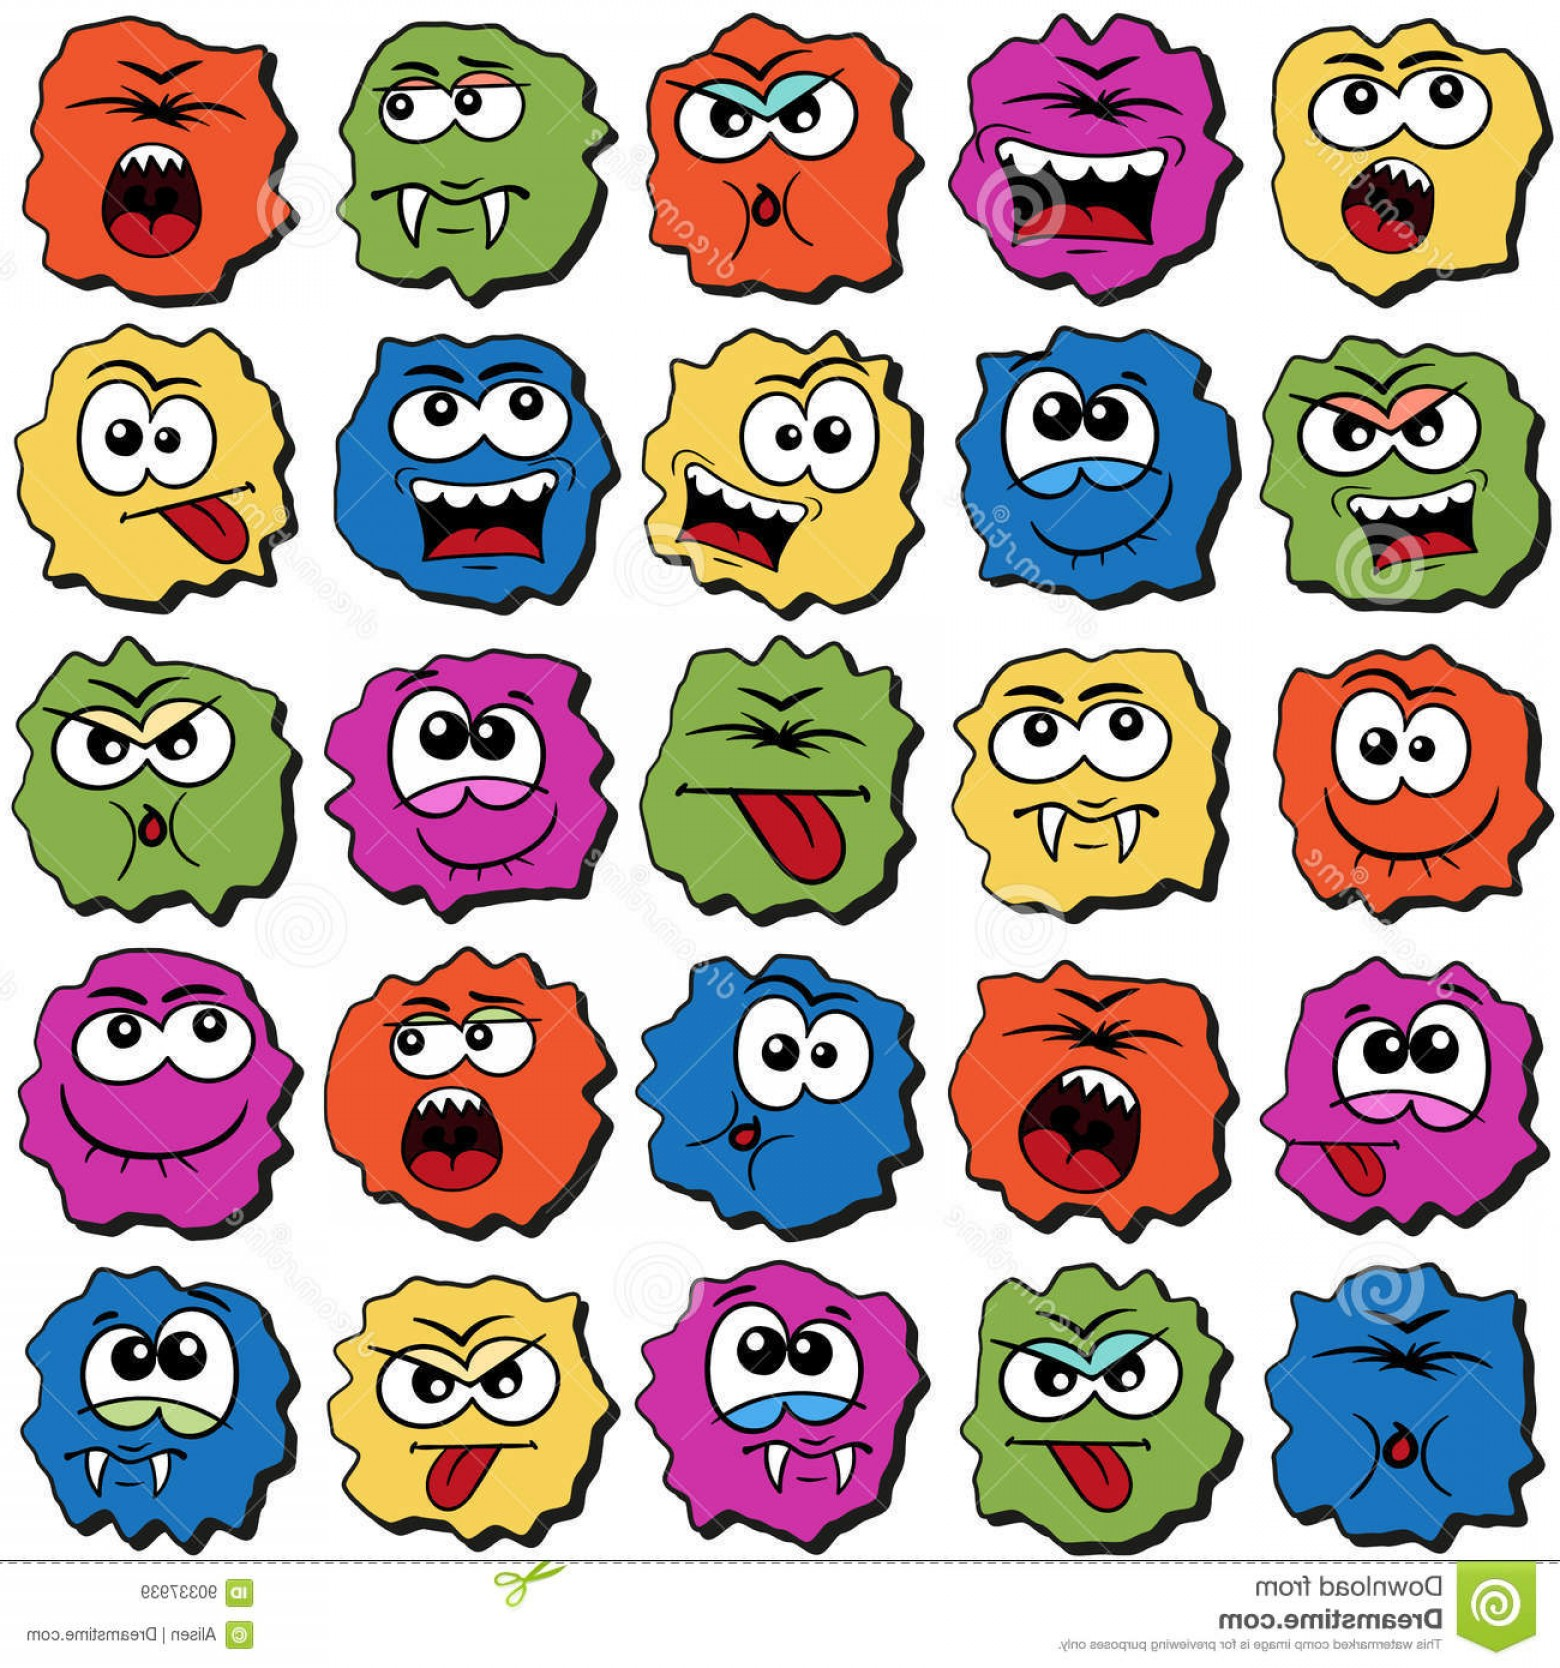 Rainbow Face Emoji Vector: Stock Illustration Rainbow Emoji Faces Vector Set Pattern Colored Cartoon Doodle Design Comics Style Image